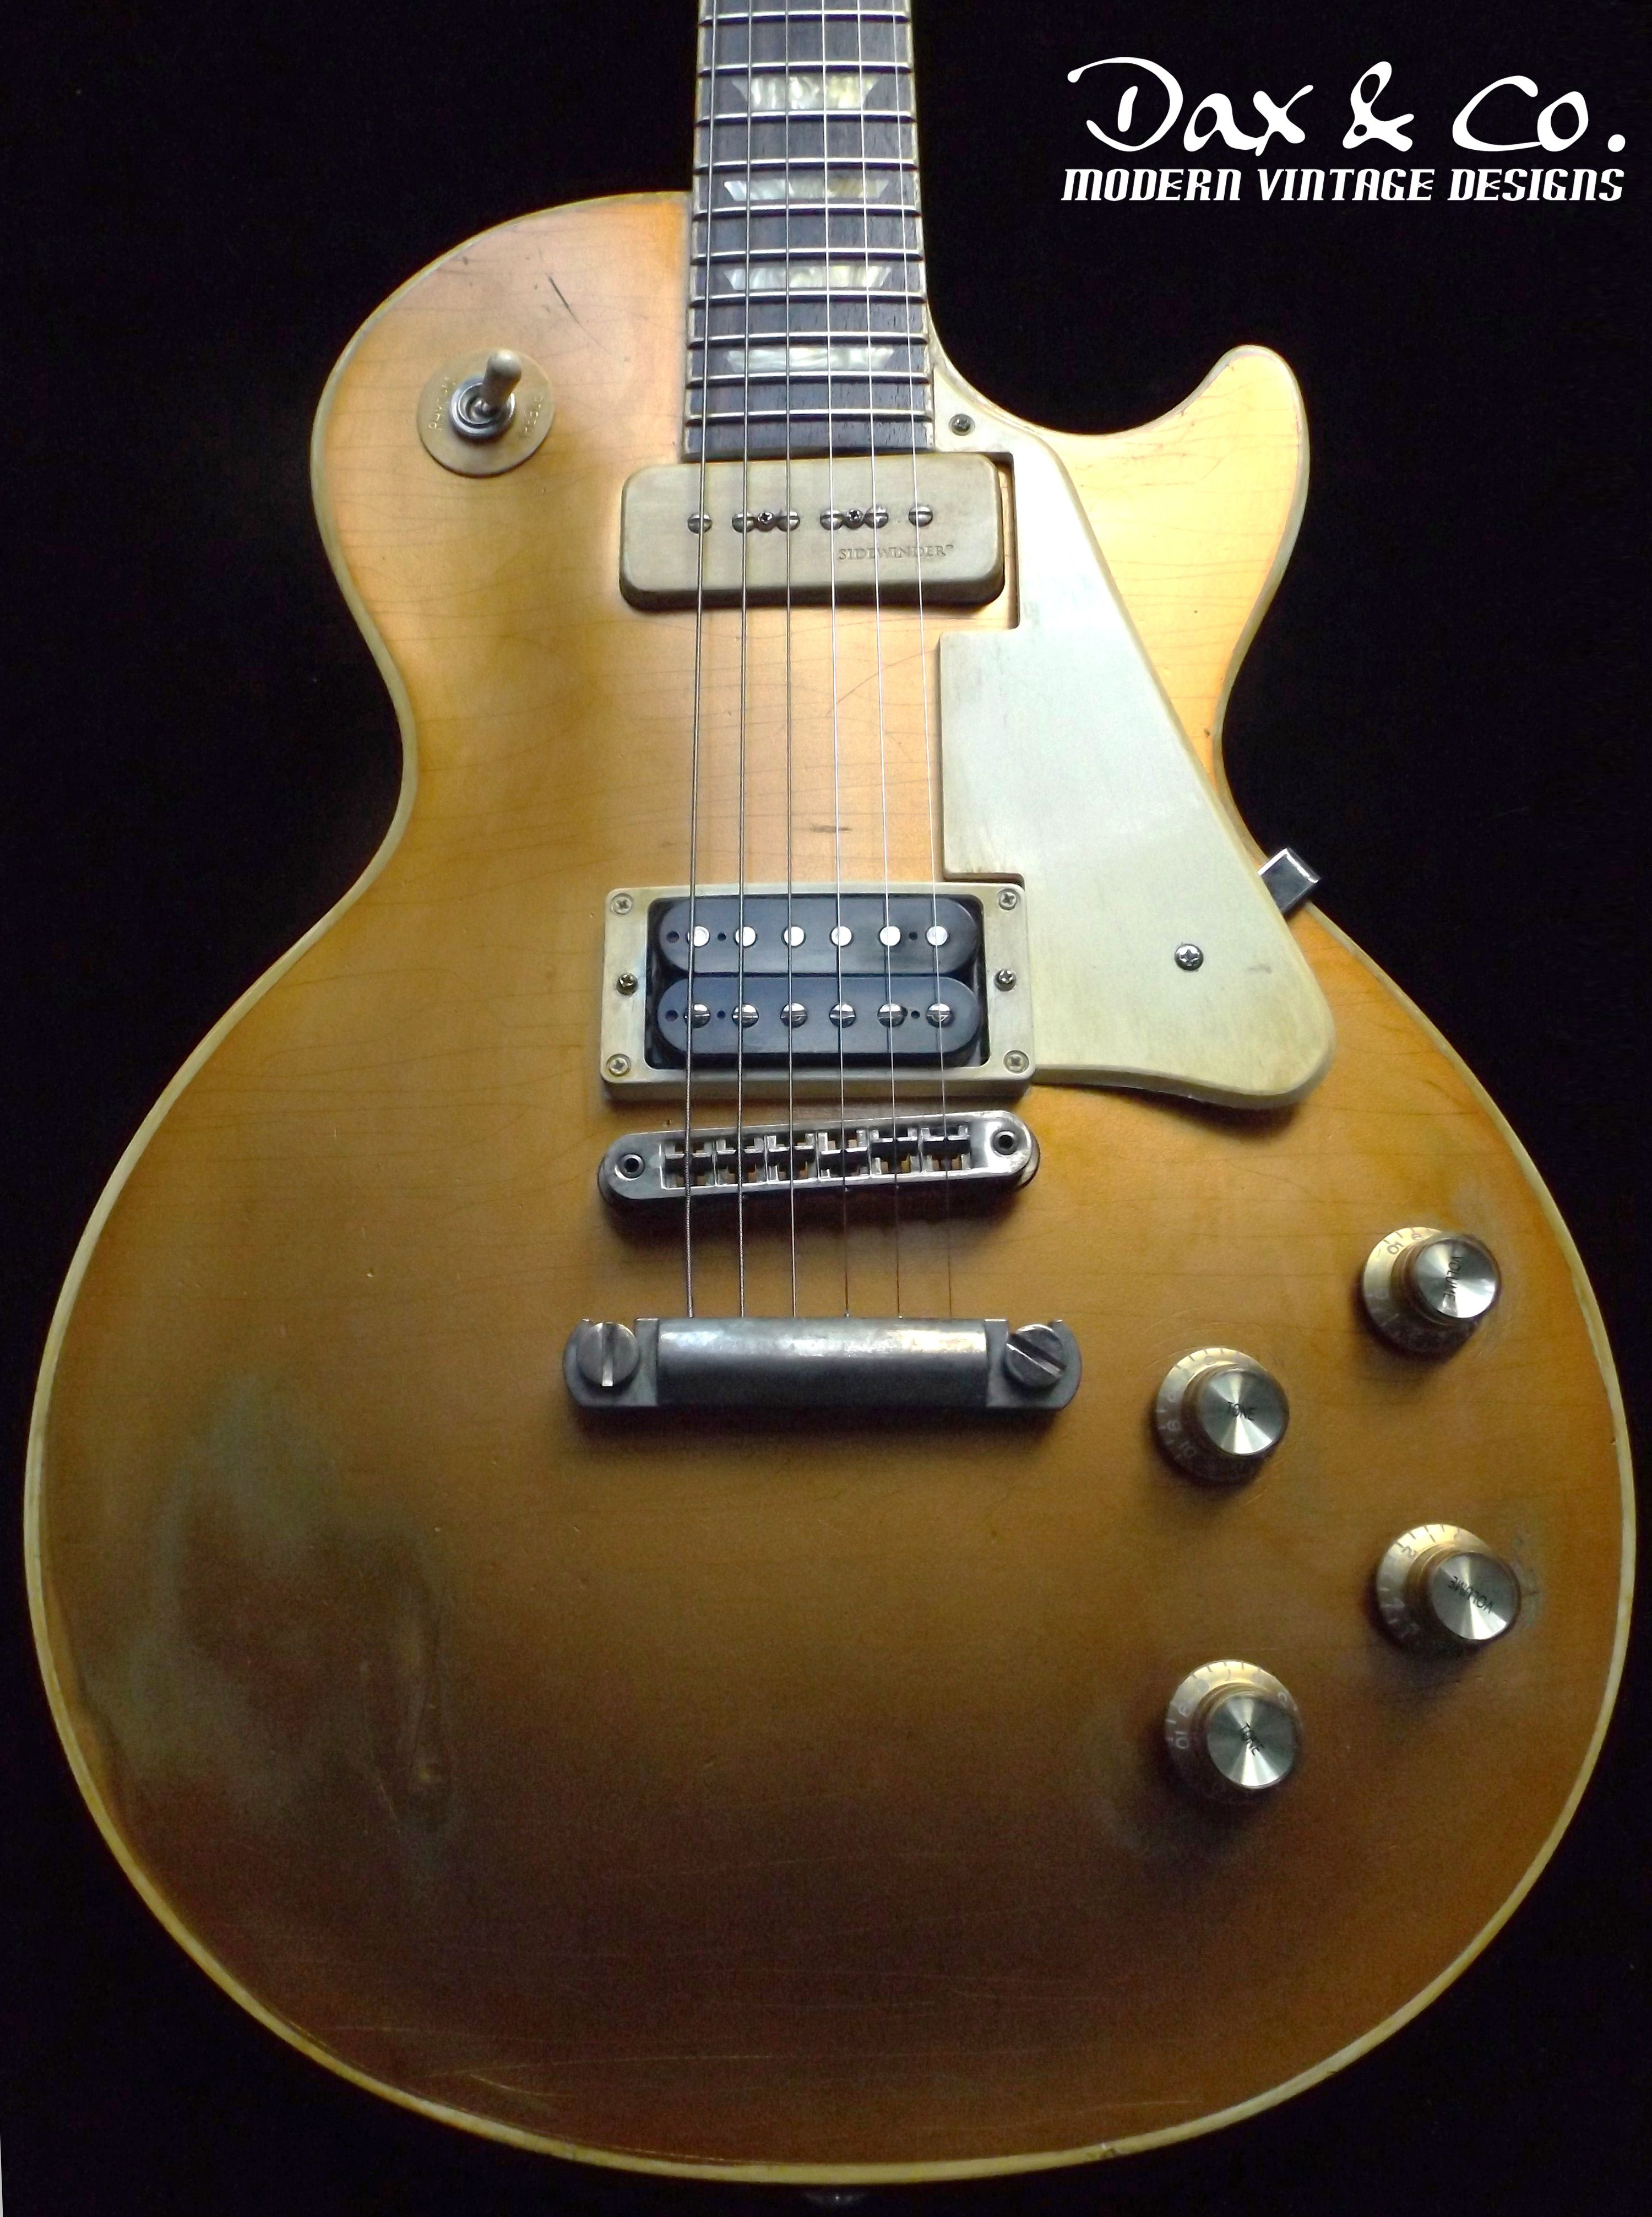 Gibson Service Giftsforsubs 1965 Es345 Wiring Repair Chicago Fret Works Guitar From The Daxco